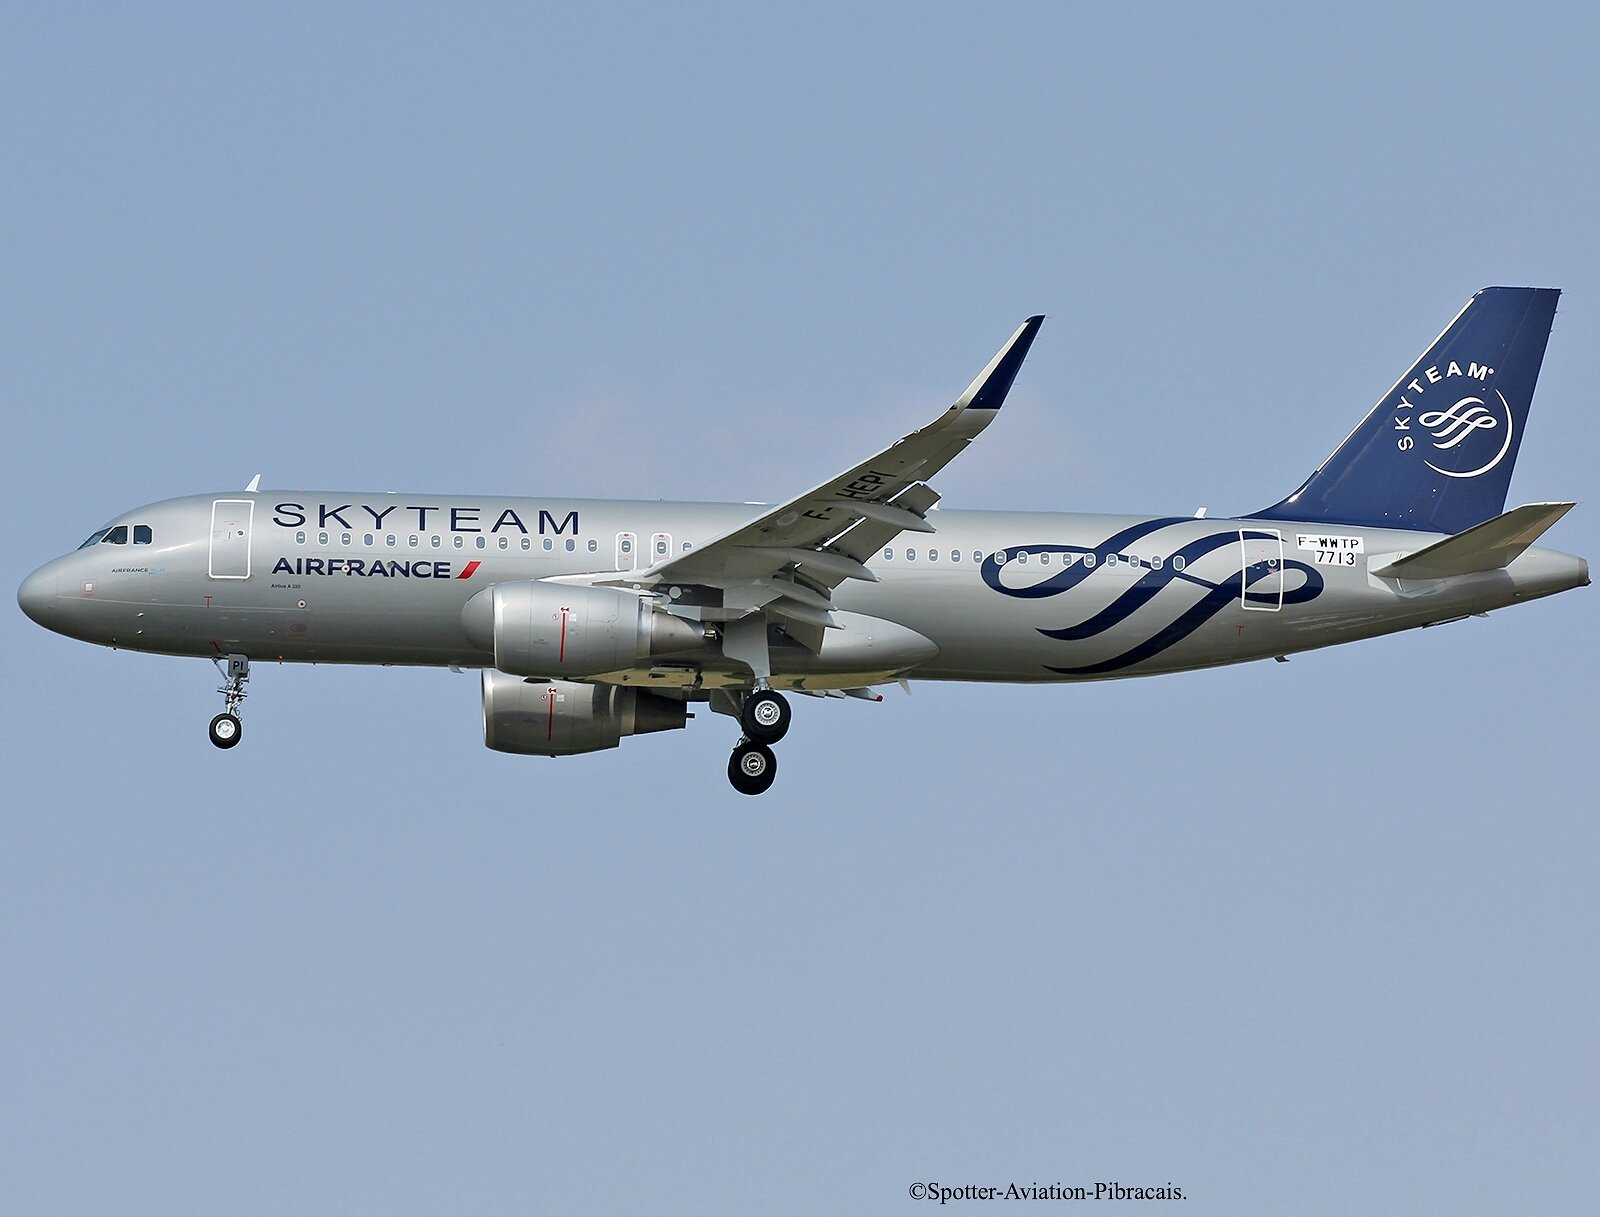 Air France (SKYTEAM)